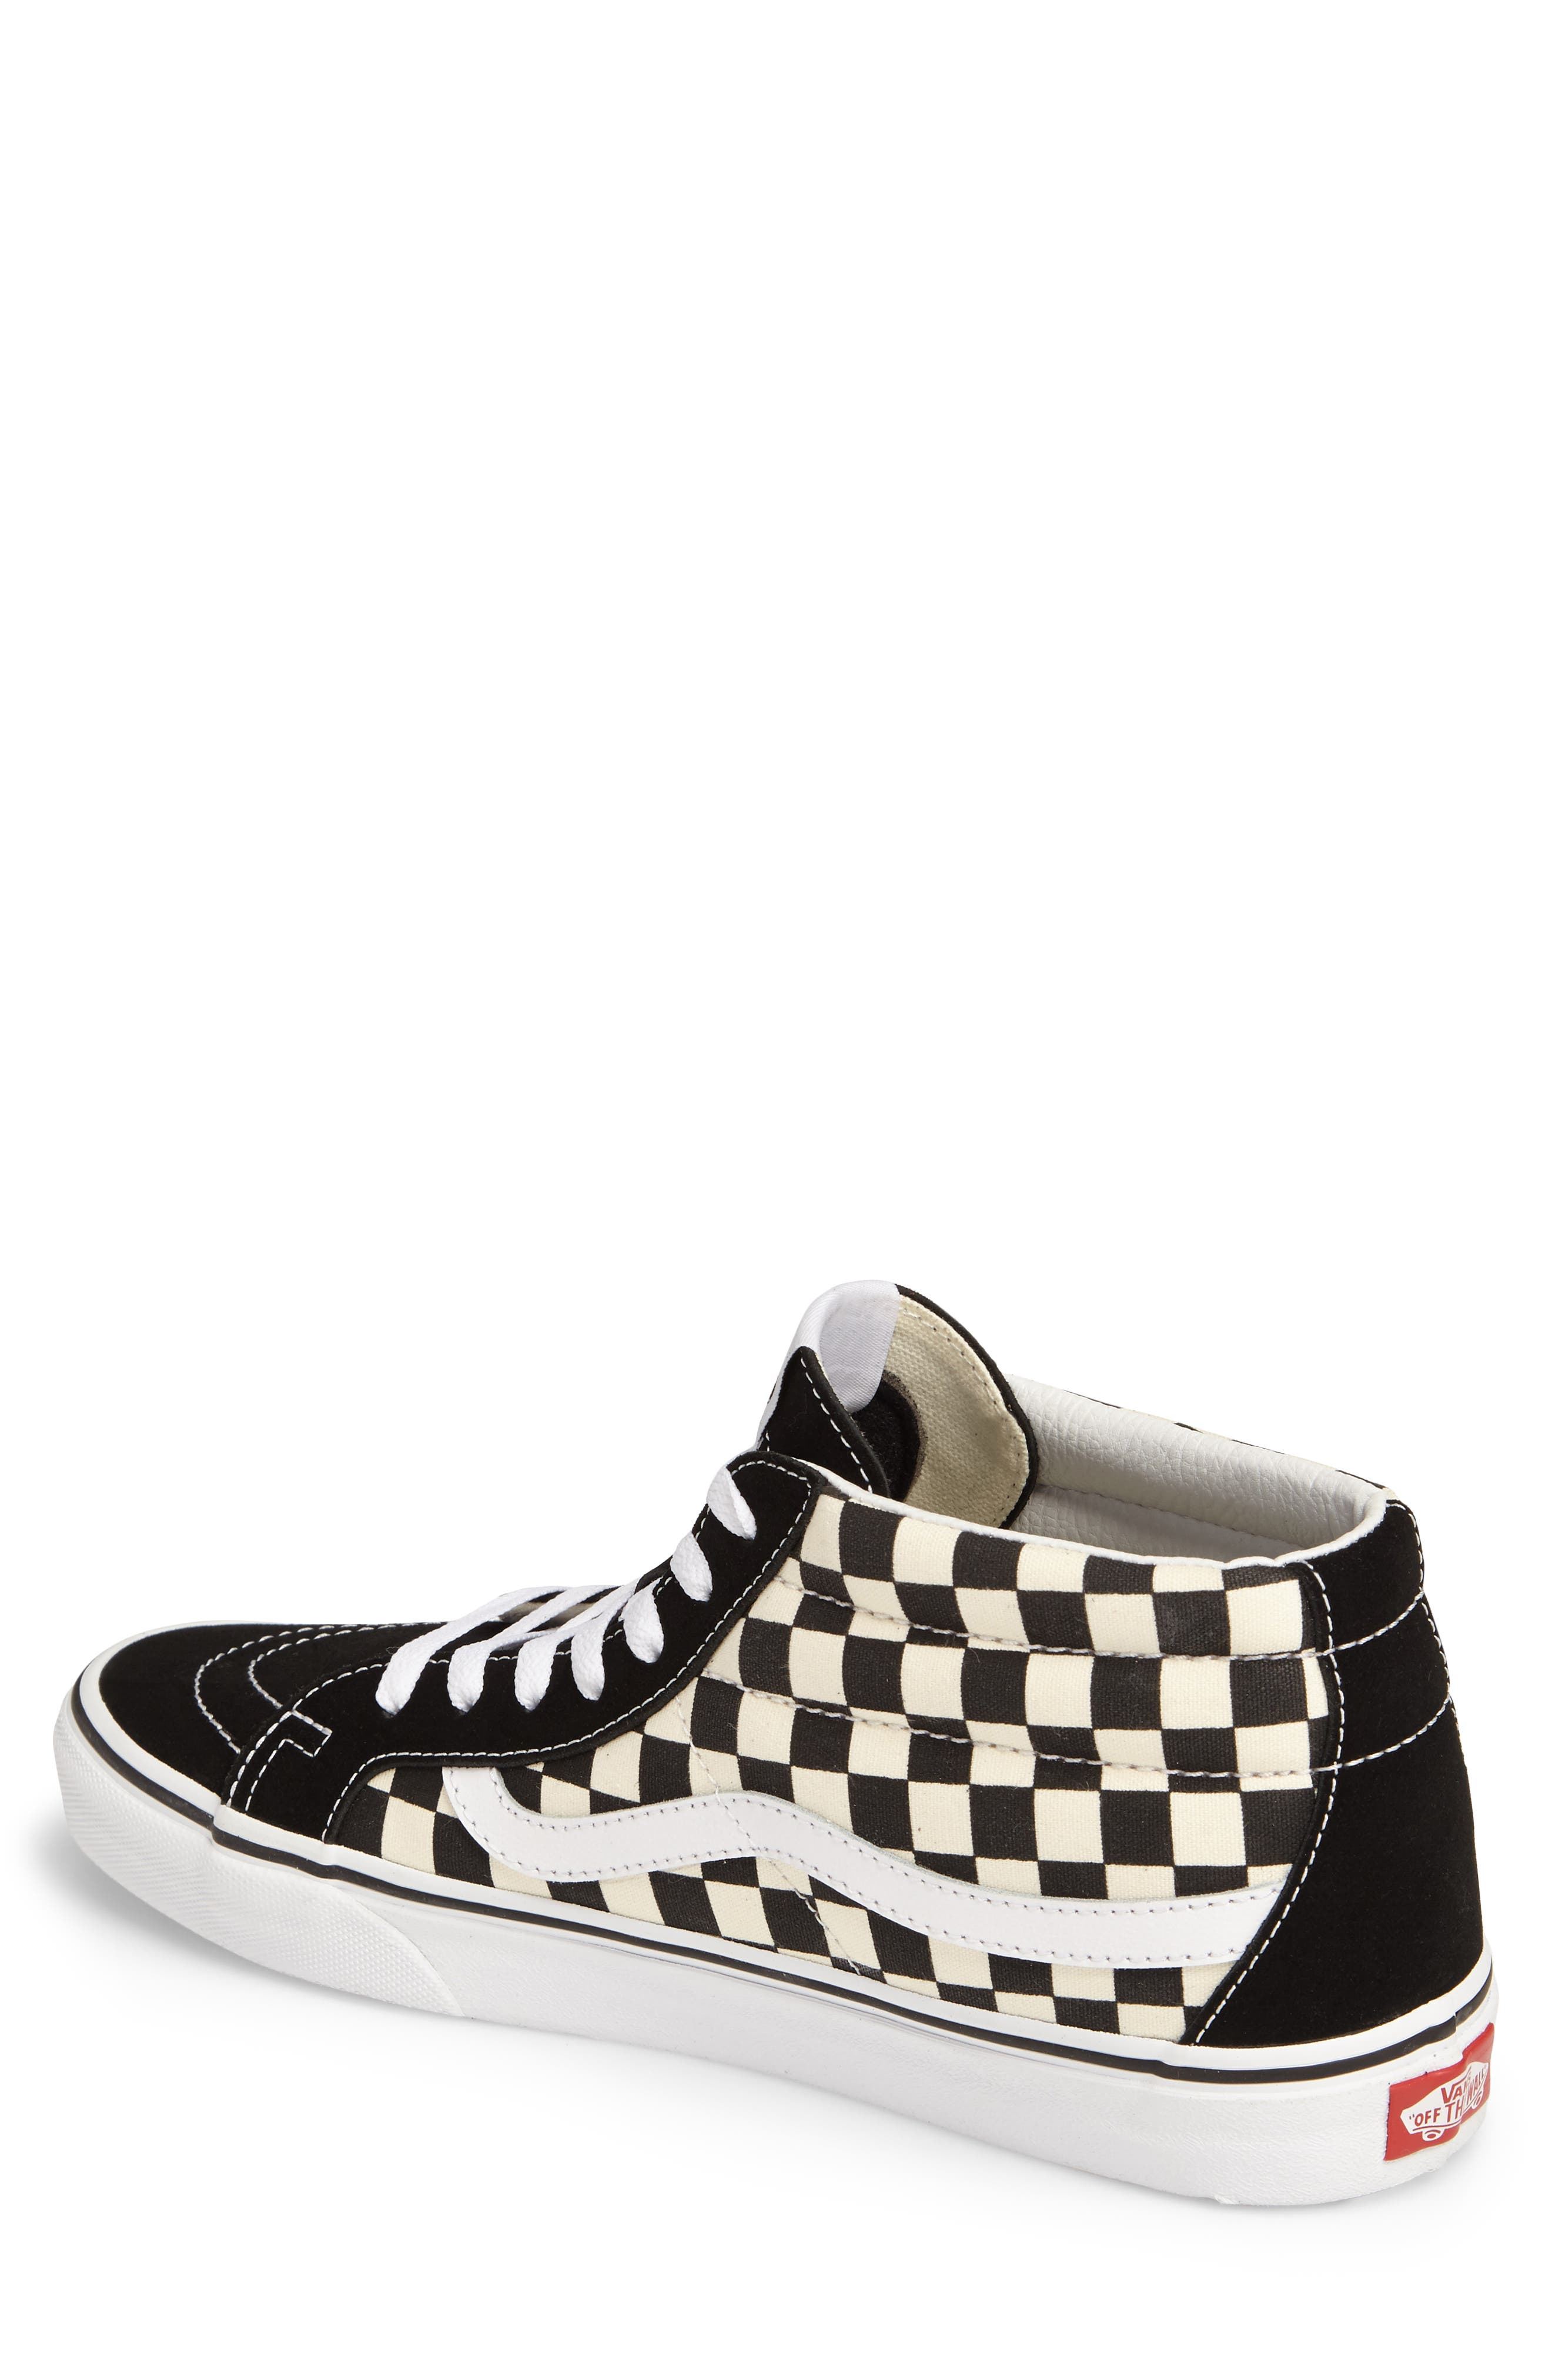 Sk8-Mid Reissue Sneaker,                             Alternate thumbnail 2, color,                             White Checker Canvas/ Suede